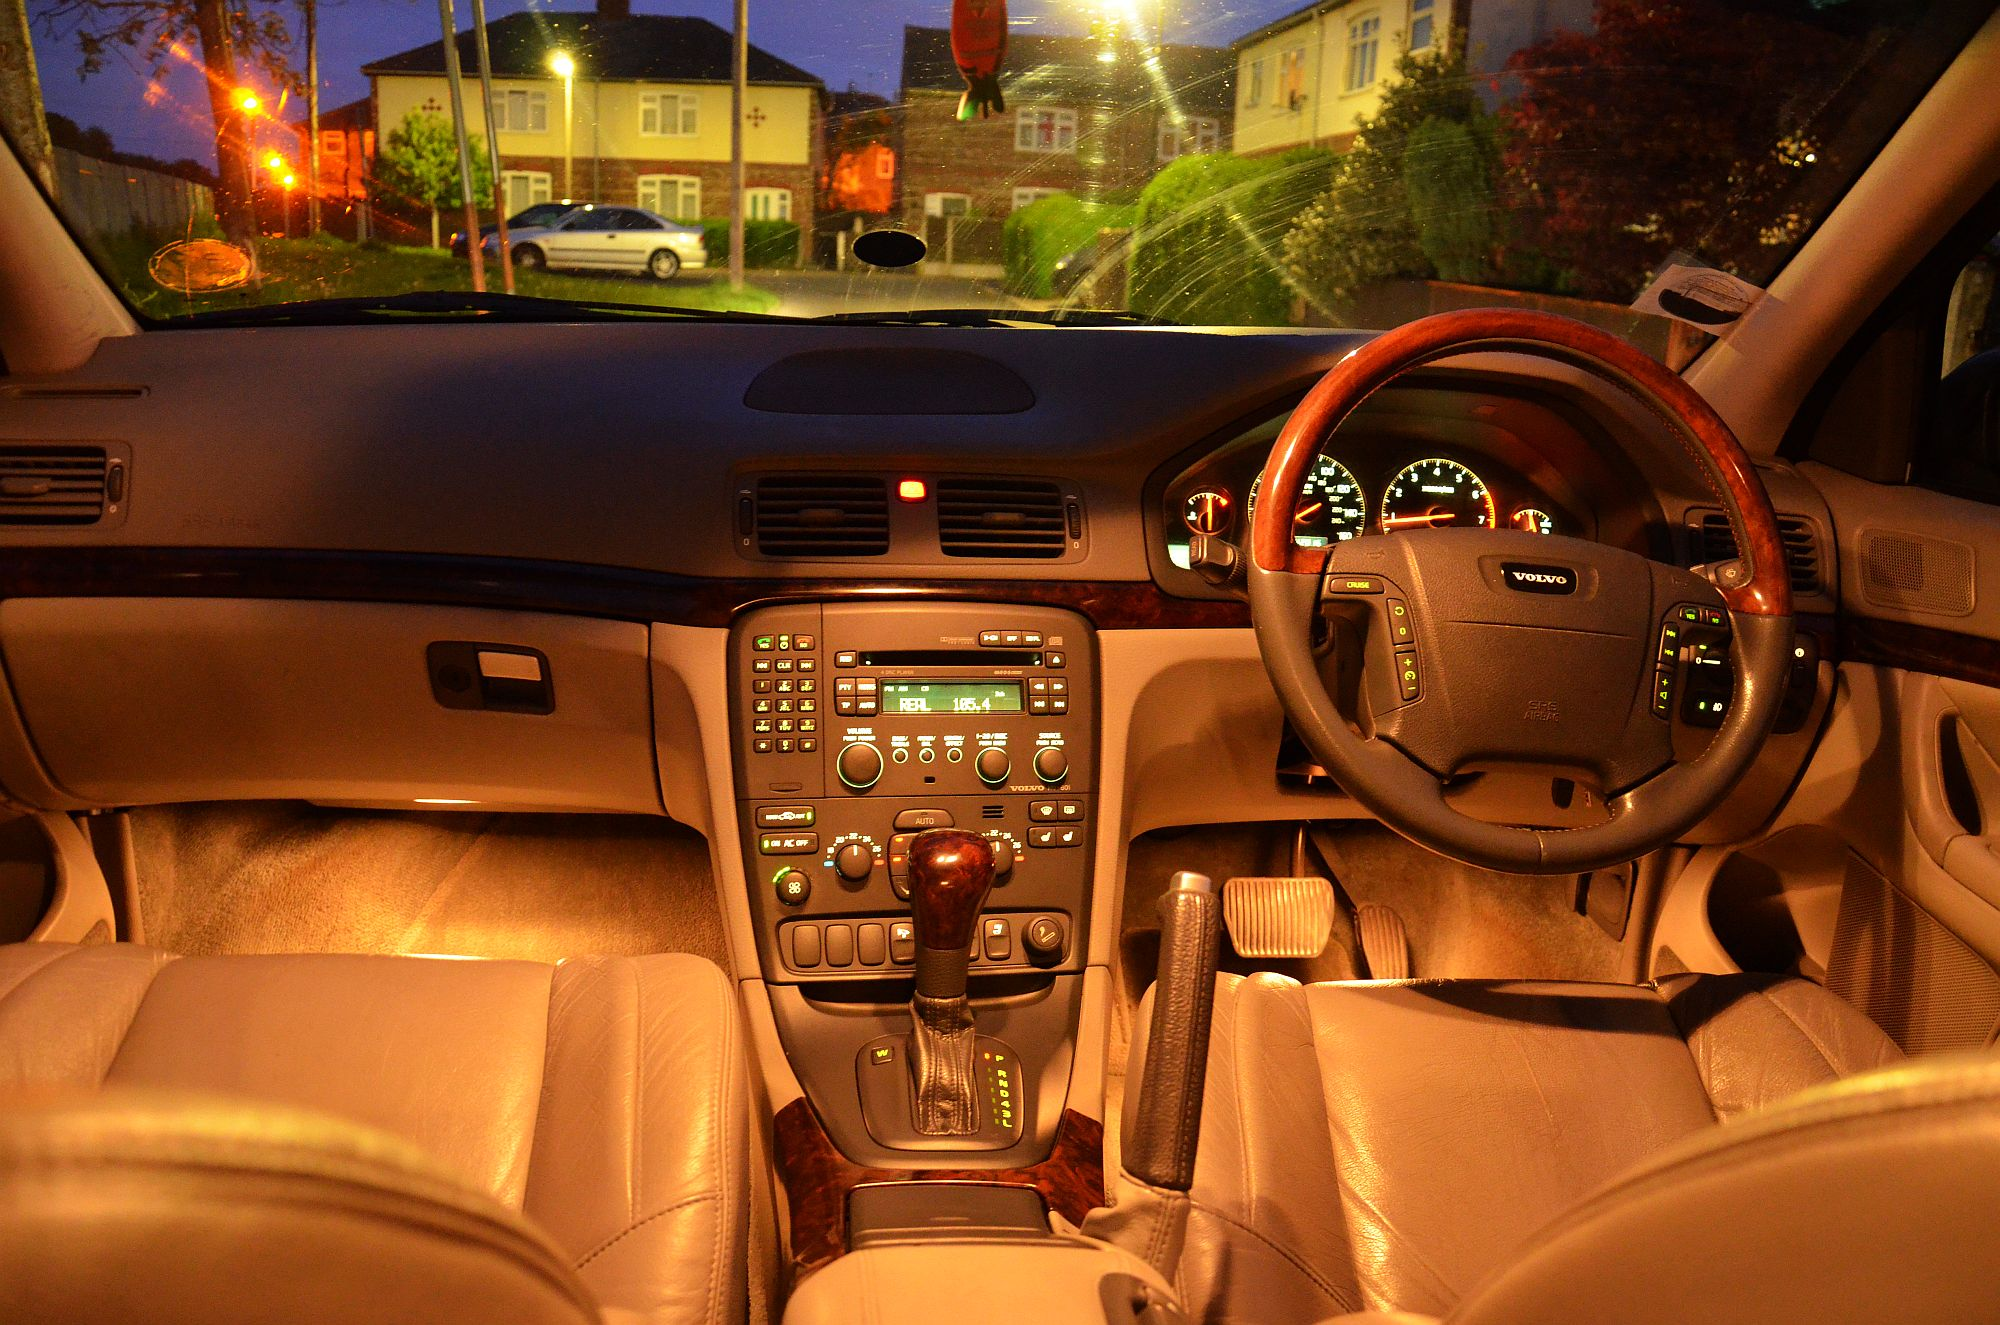 File:Volvo S80 2.4T 2002 Blue, night dashboard lights..jpg - Wikimedia Commons